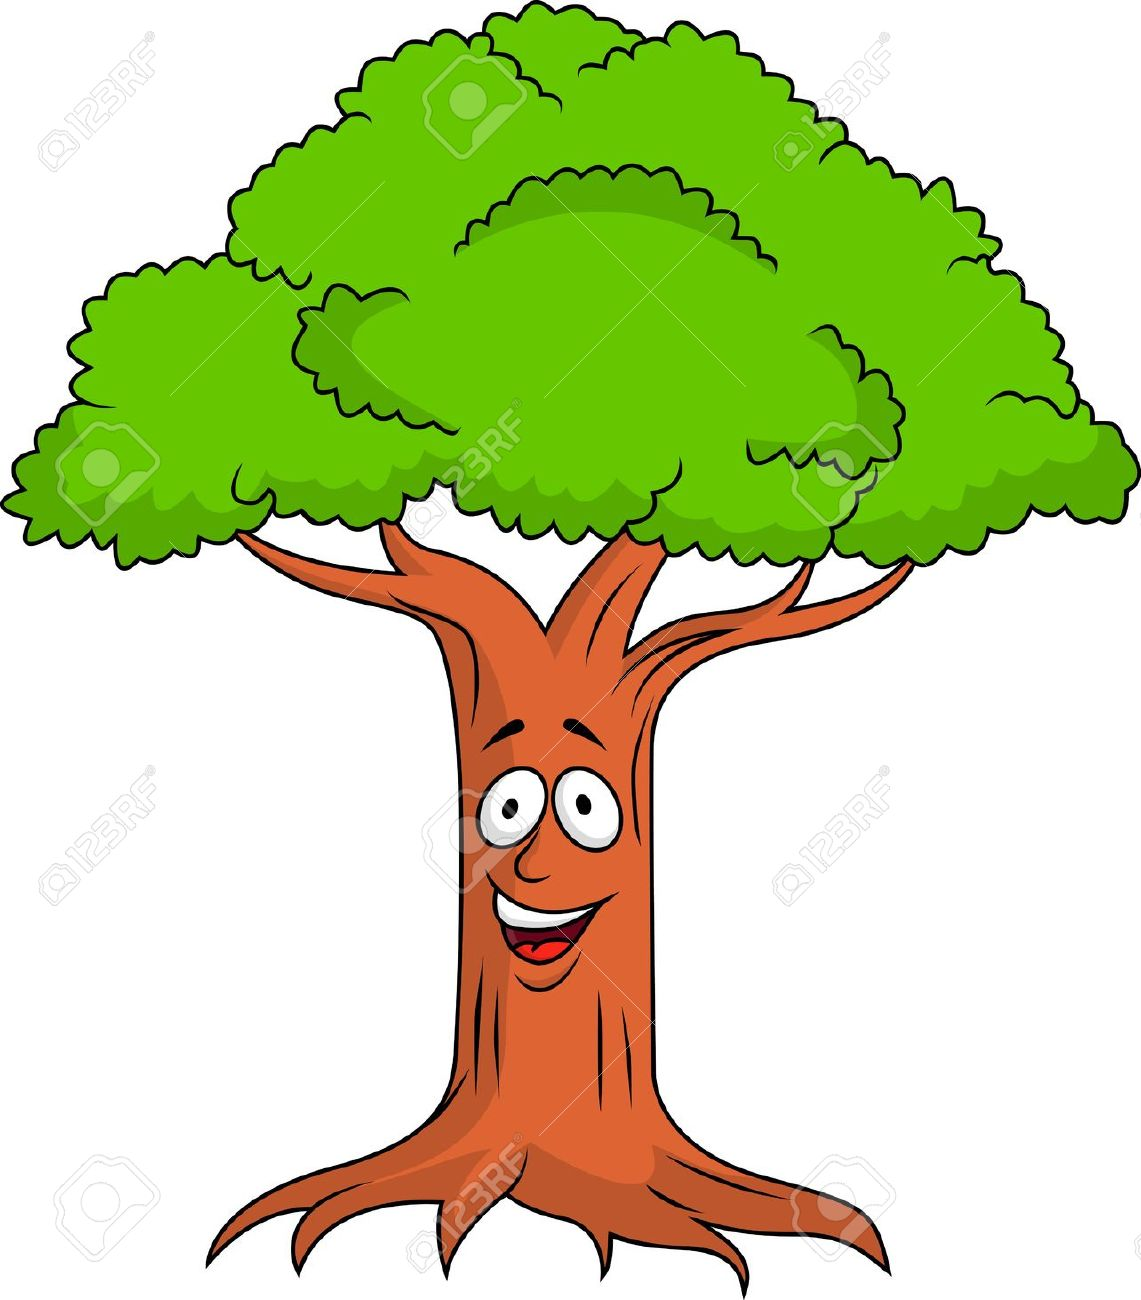 Tree face clipart.